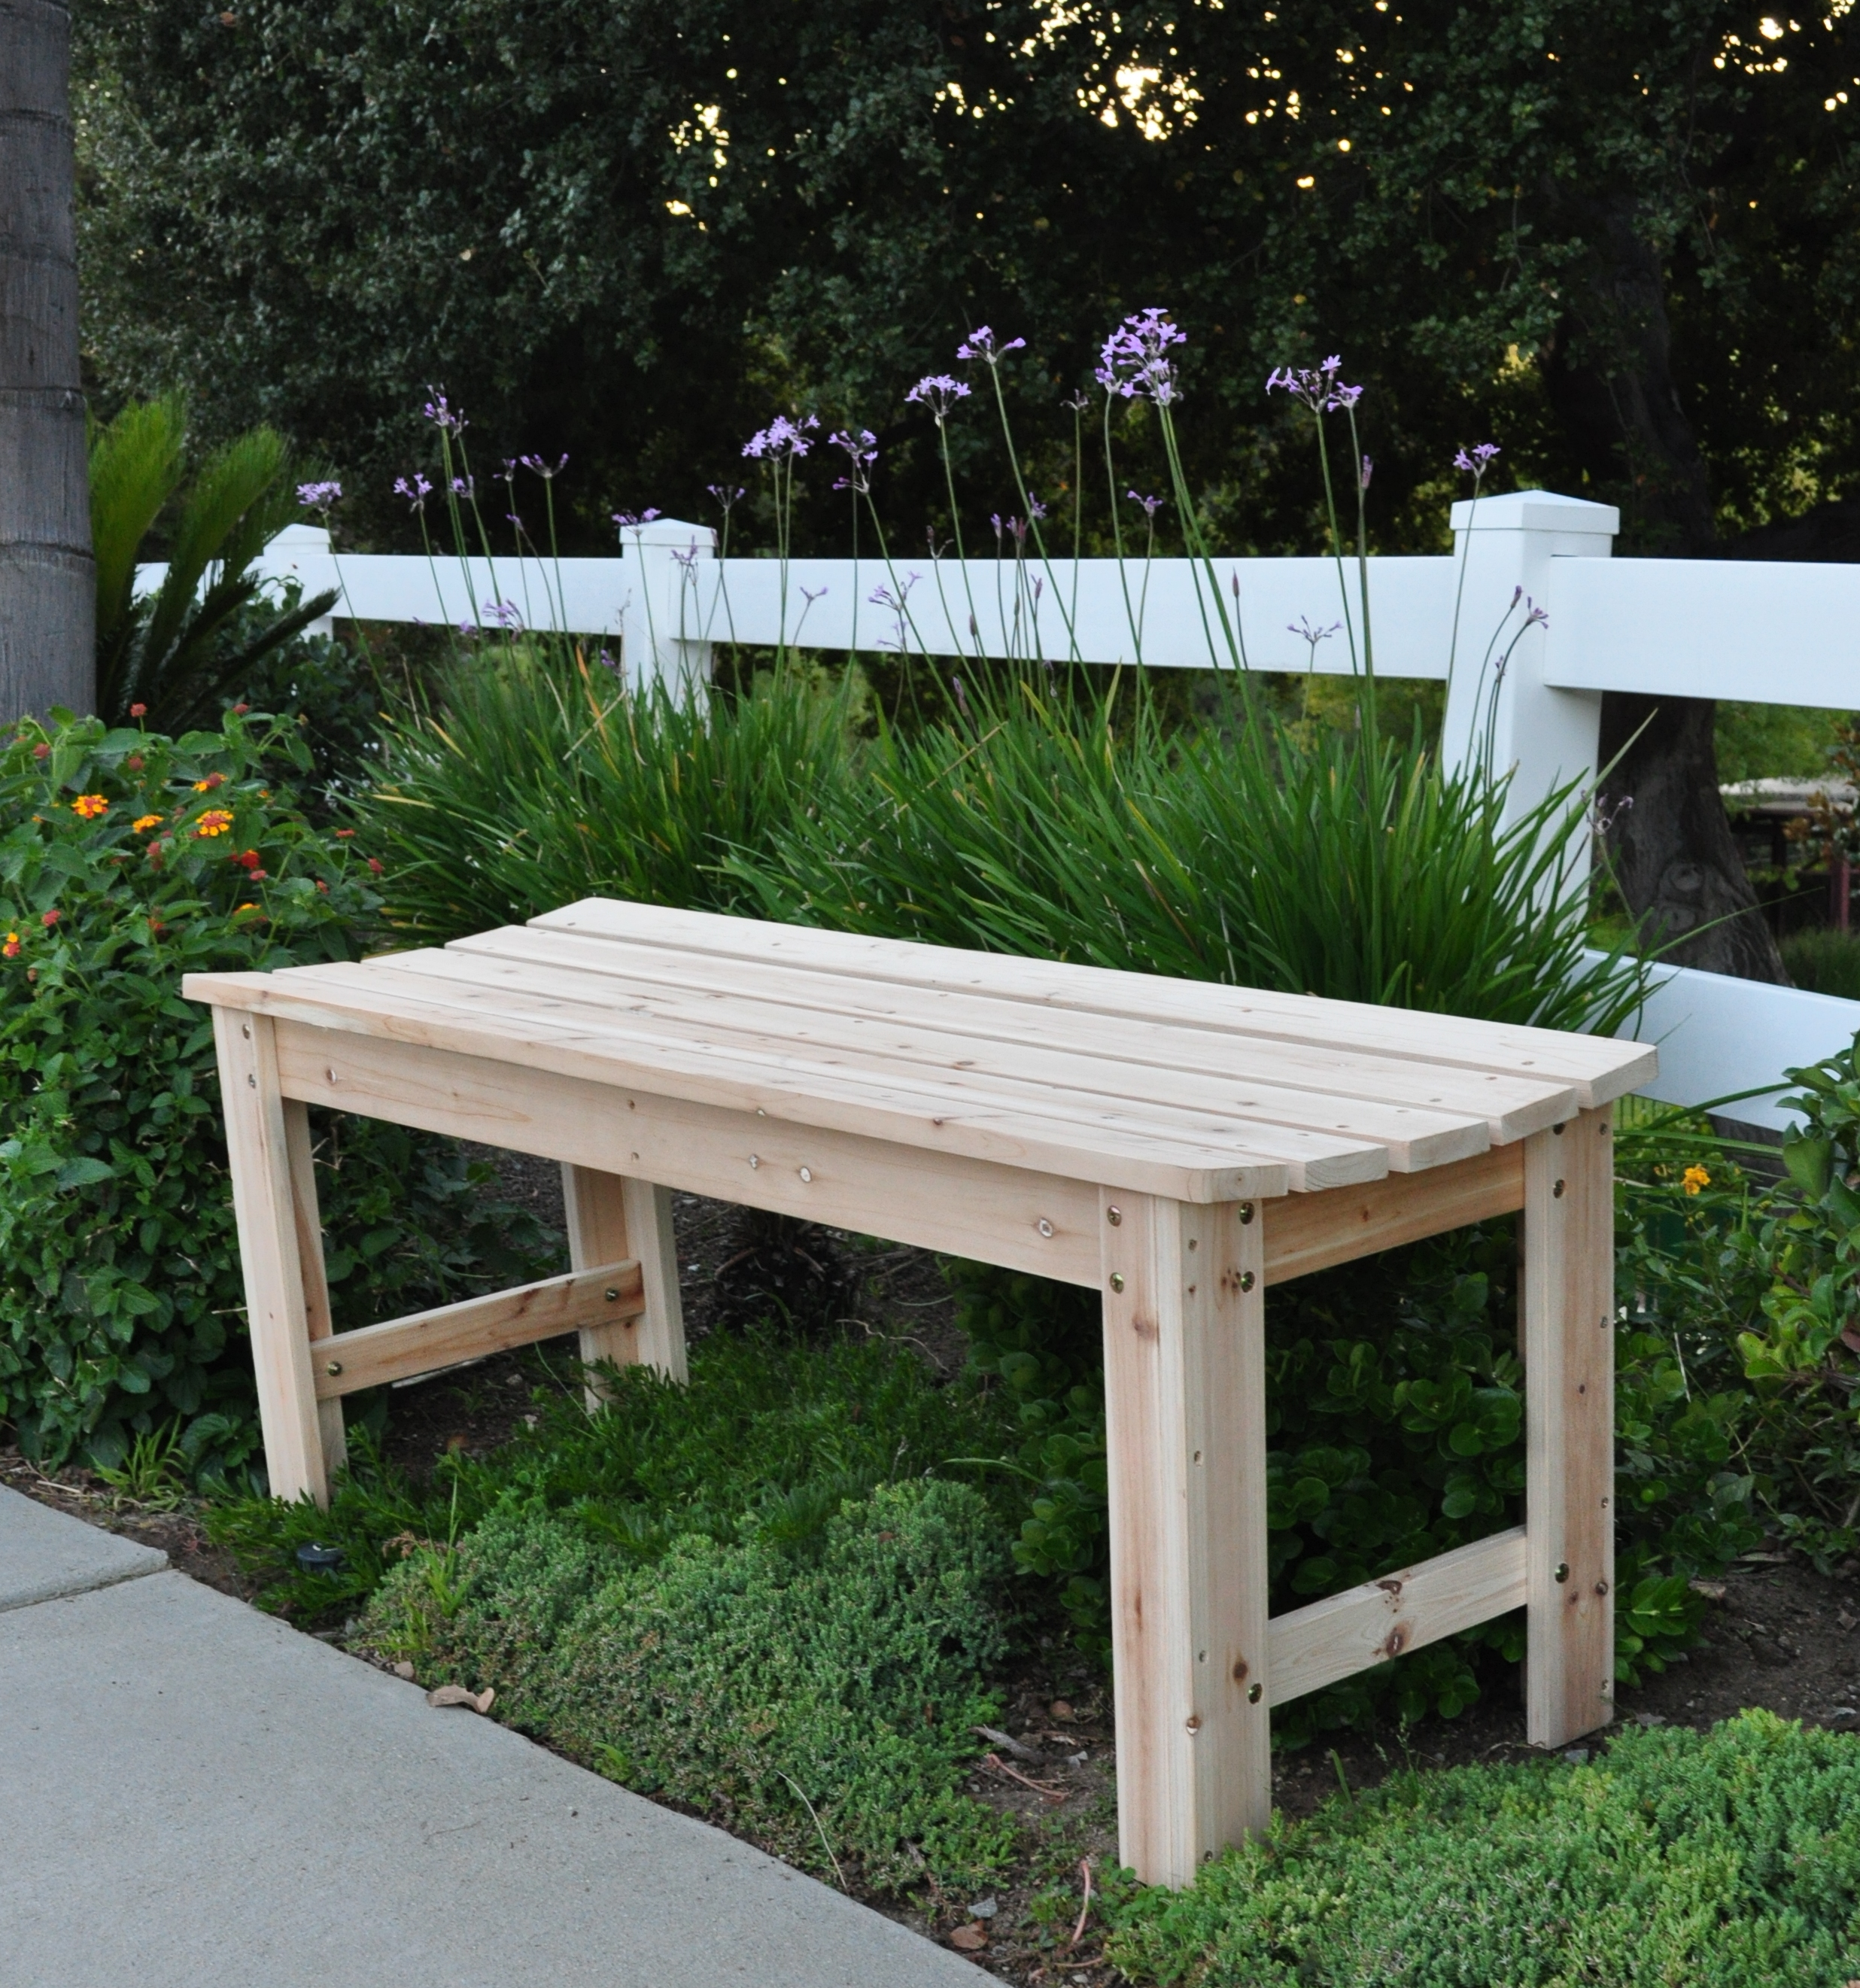 Shine Company 5 Ft. Backless Garden Bench - Natural